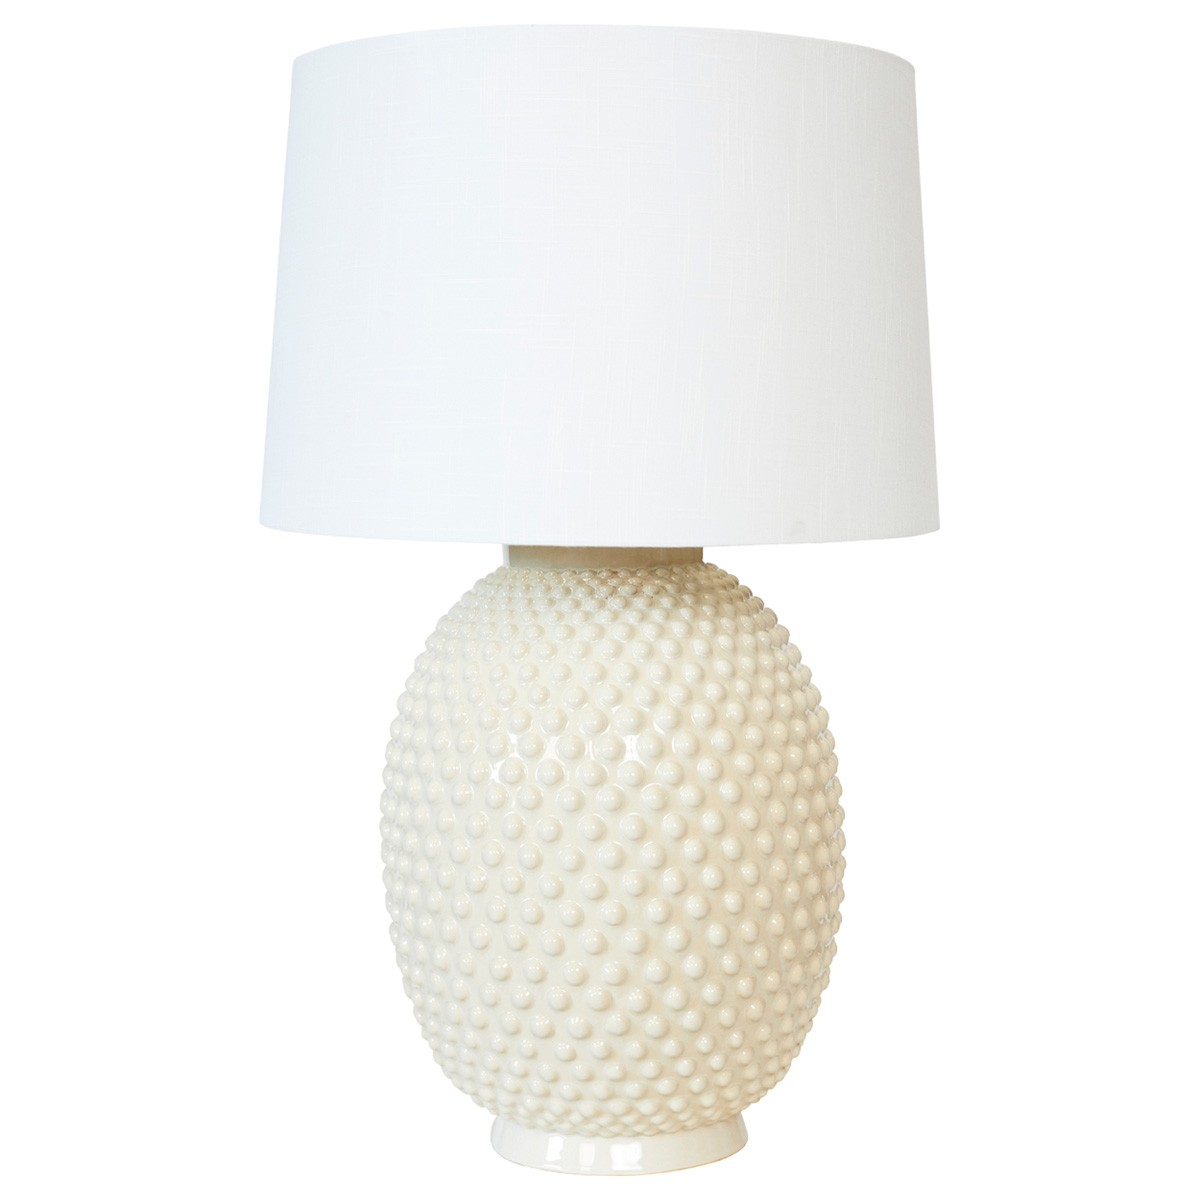 Arcadia Ceramic Base Table Lamp